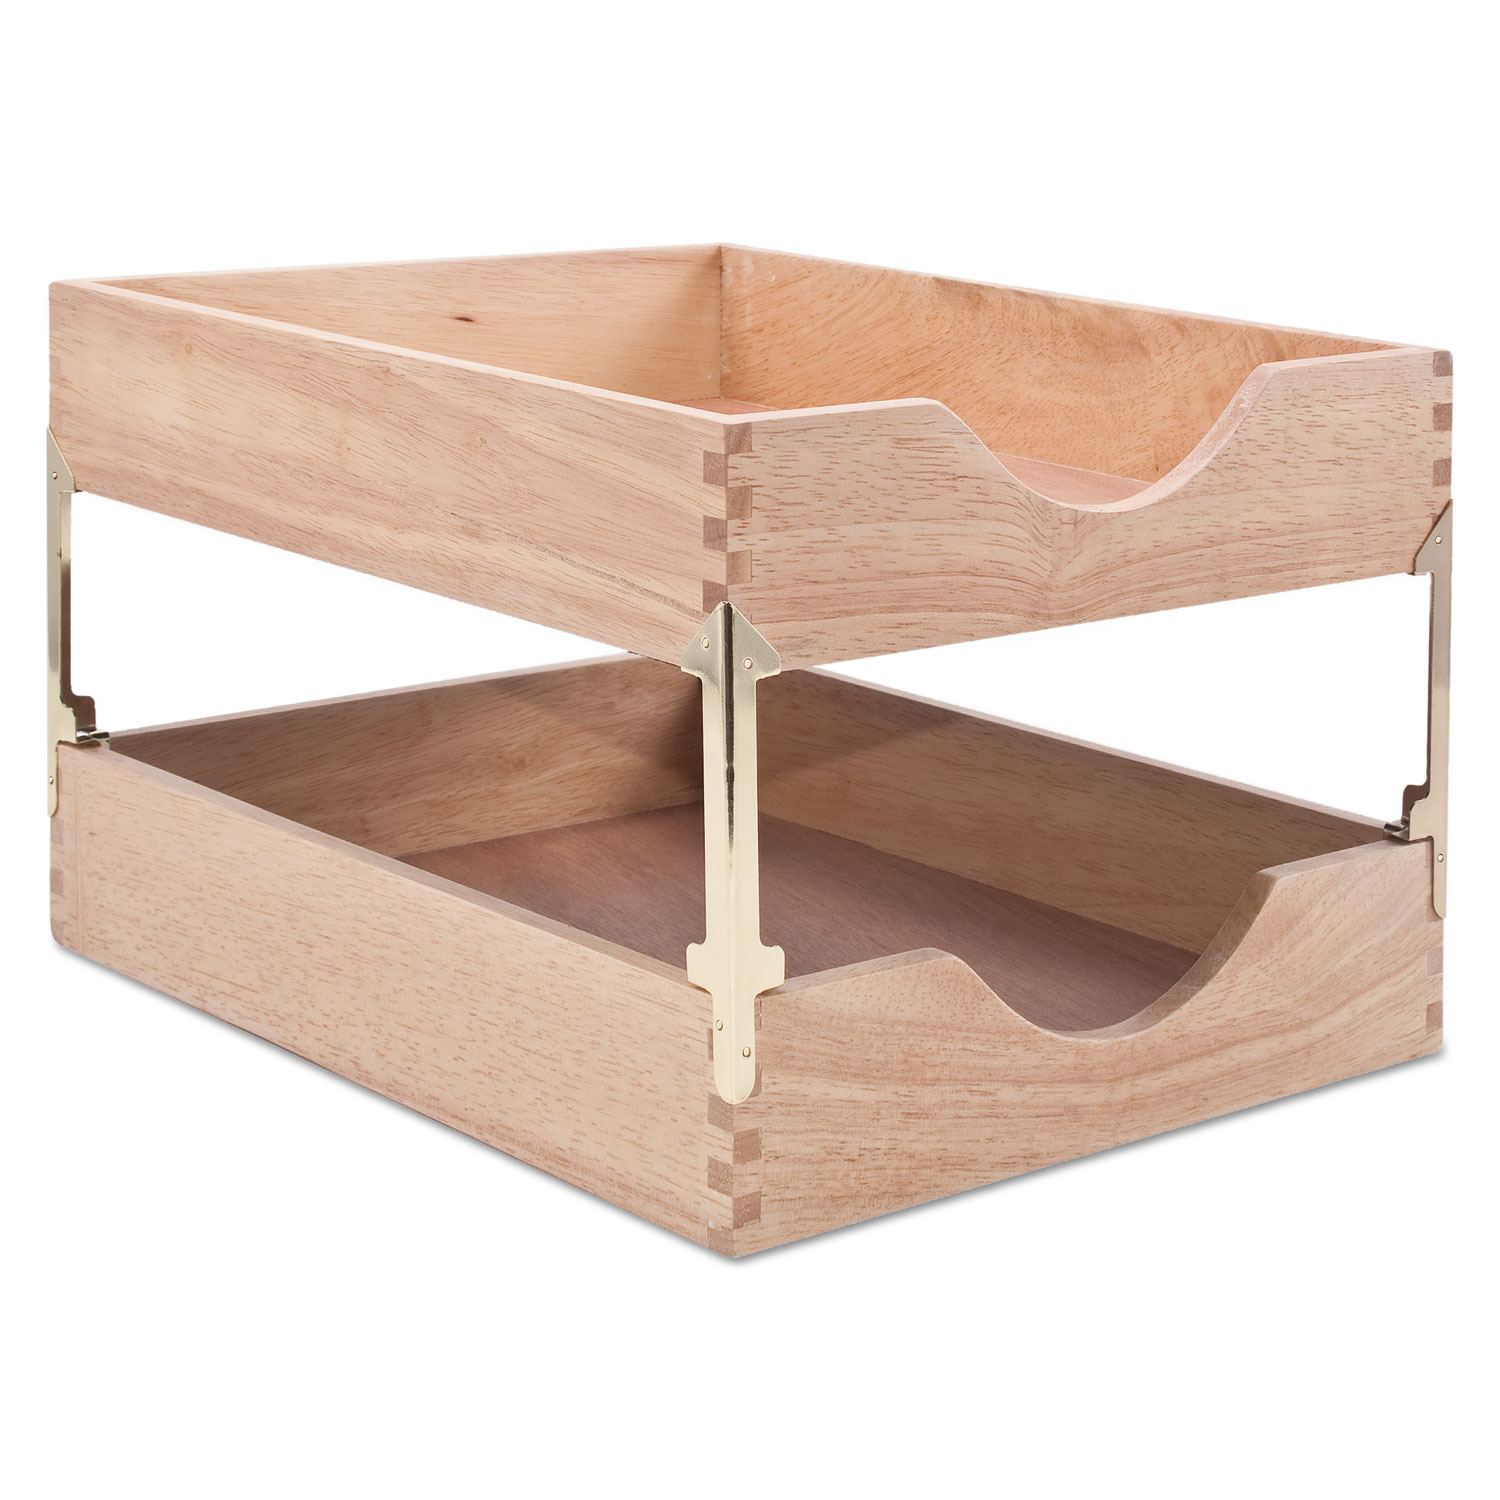 Peachy Stackable Desk Tray Columbus In Usa Home Interior And Landscaping Transignezvosmurscom